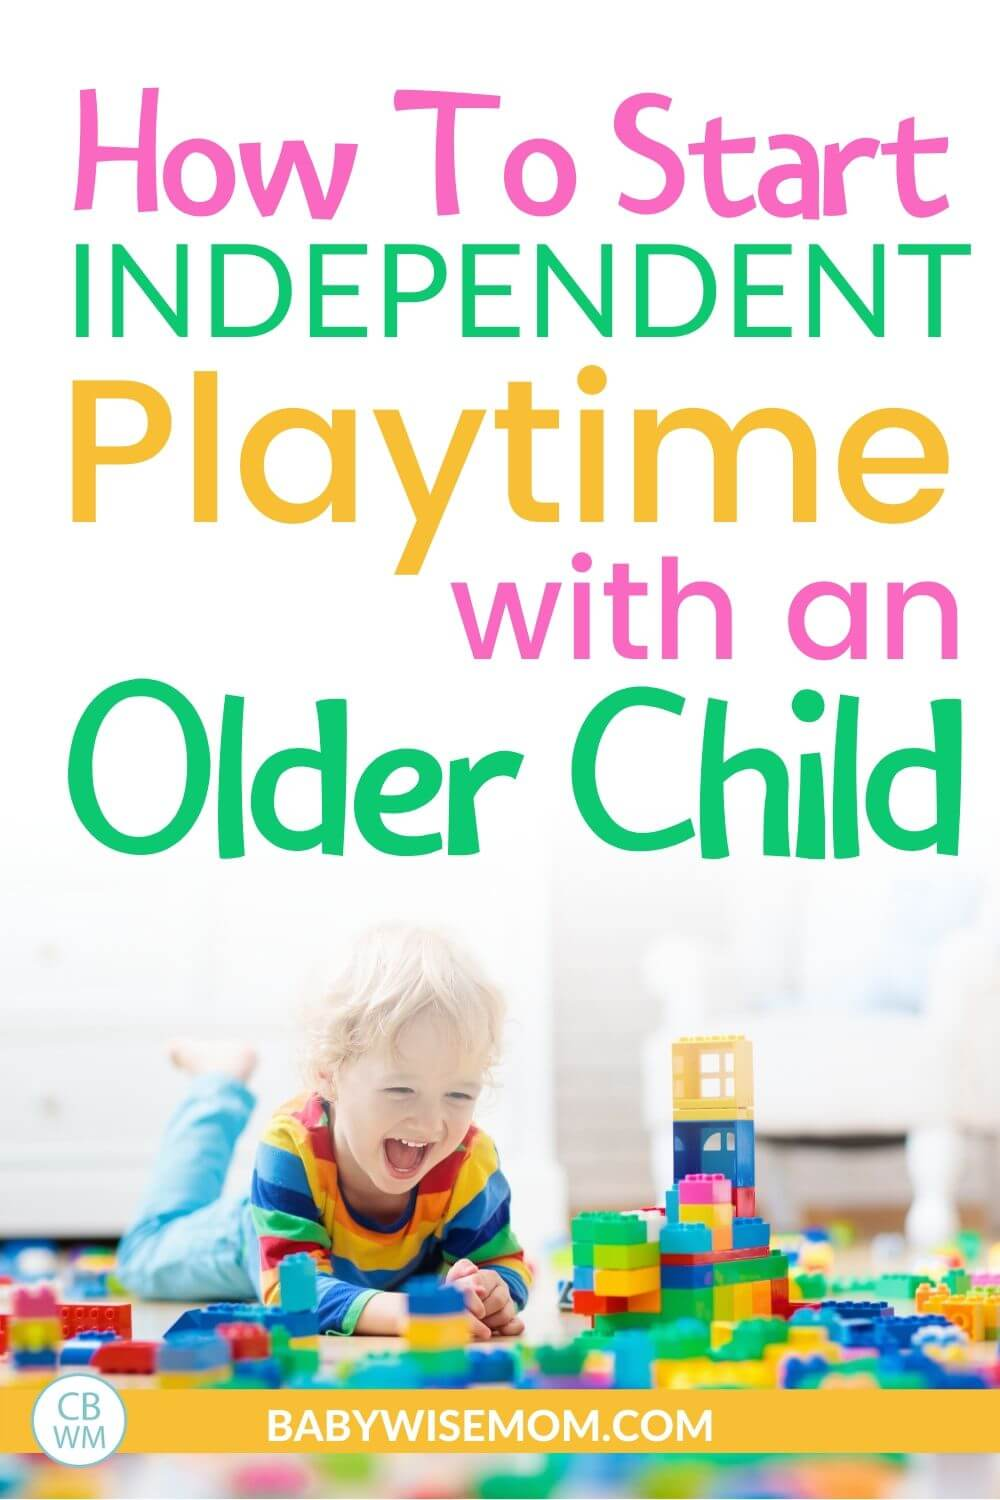 Independent Playtime late pinnable image